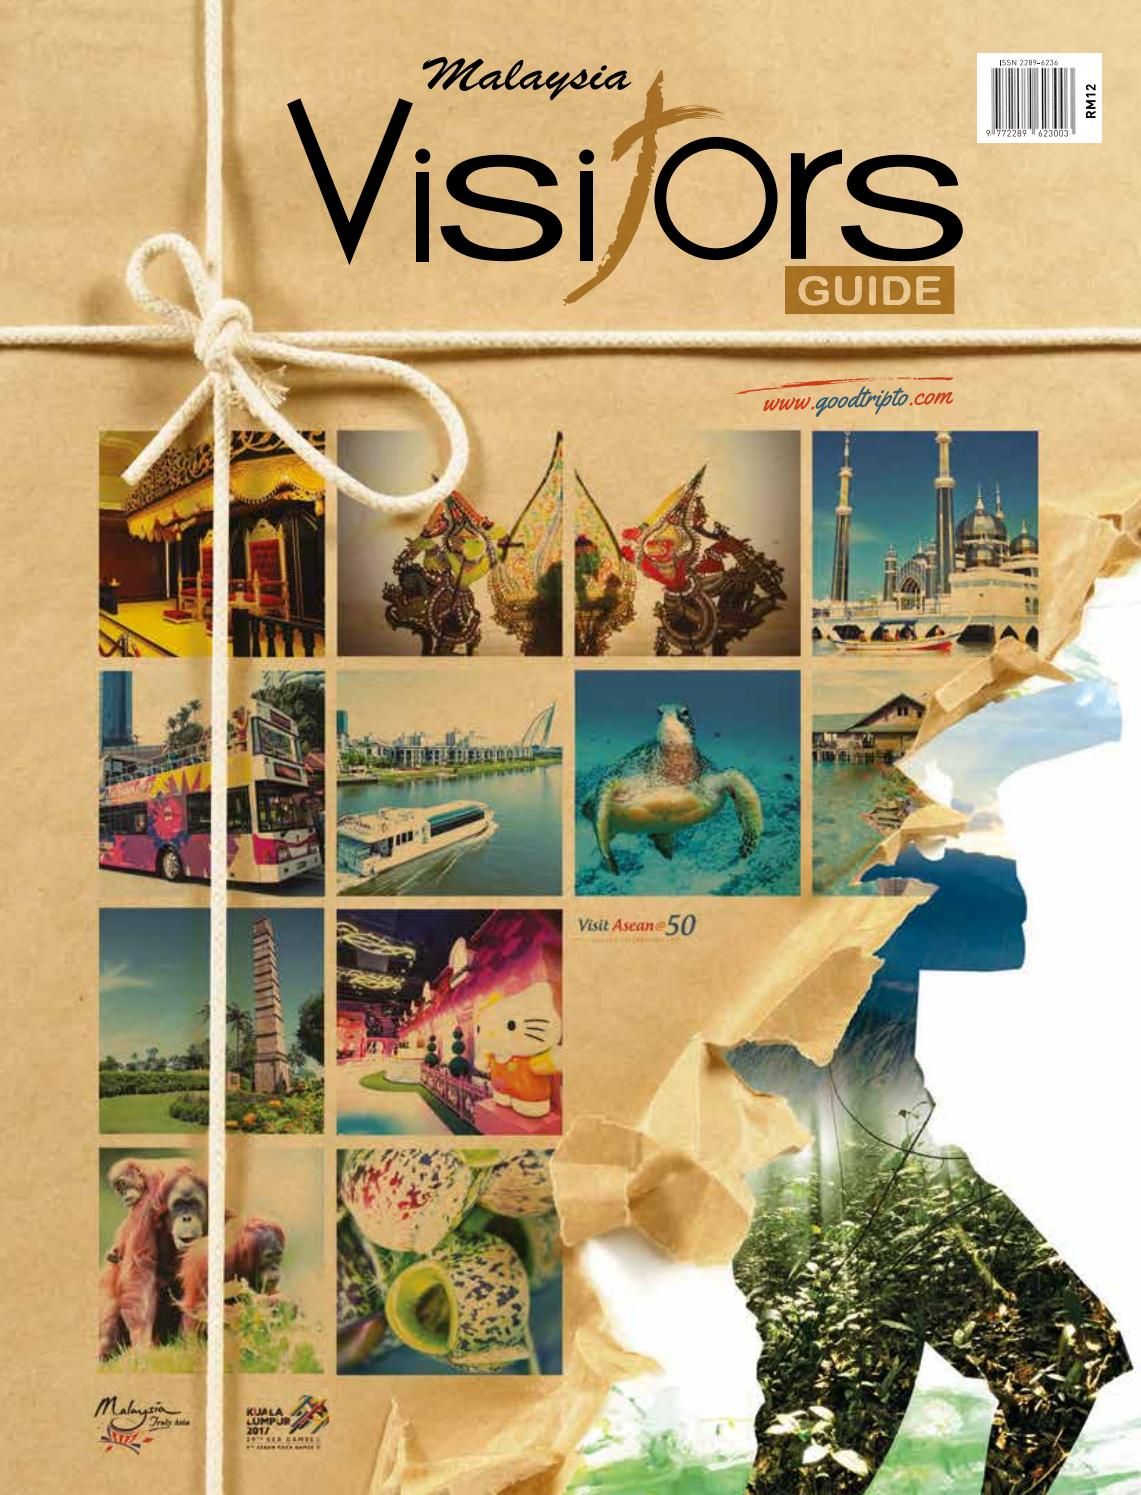 Malaysia Visitors Guide 2017 28th Edition By Tourism Publications Police 14796jsu 02 Hitam Jarum Orange Corporation Sdn Bhd Issuu